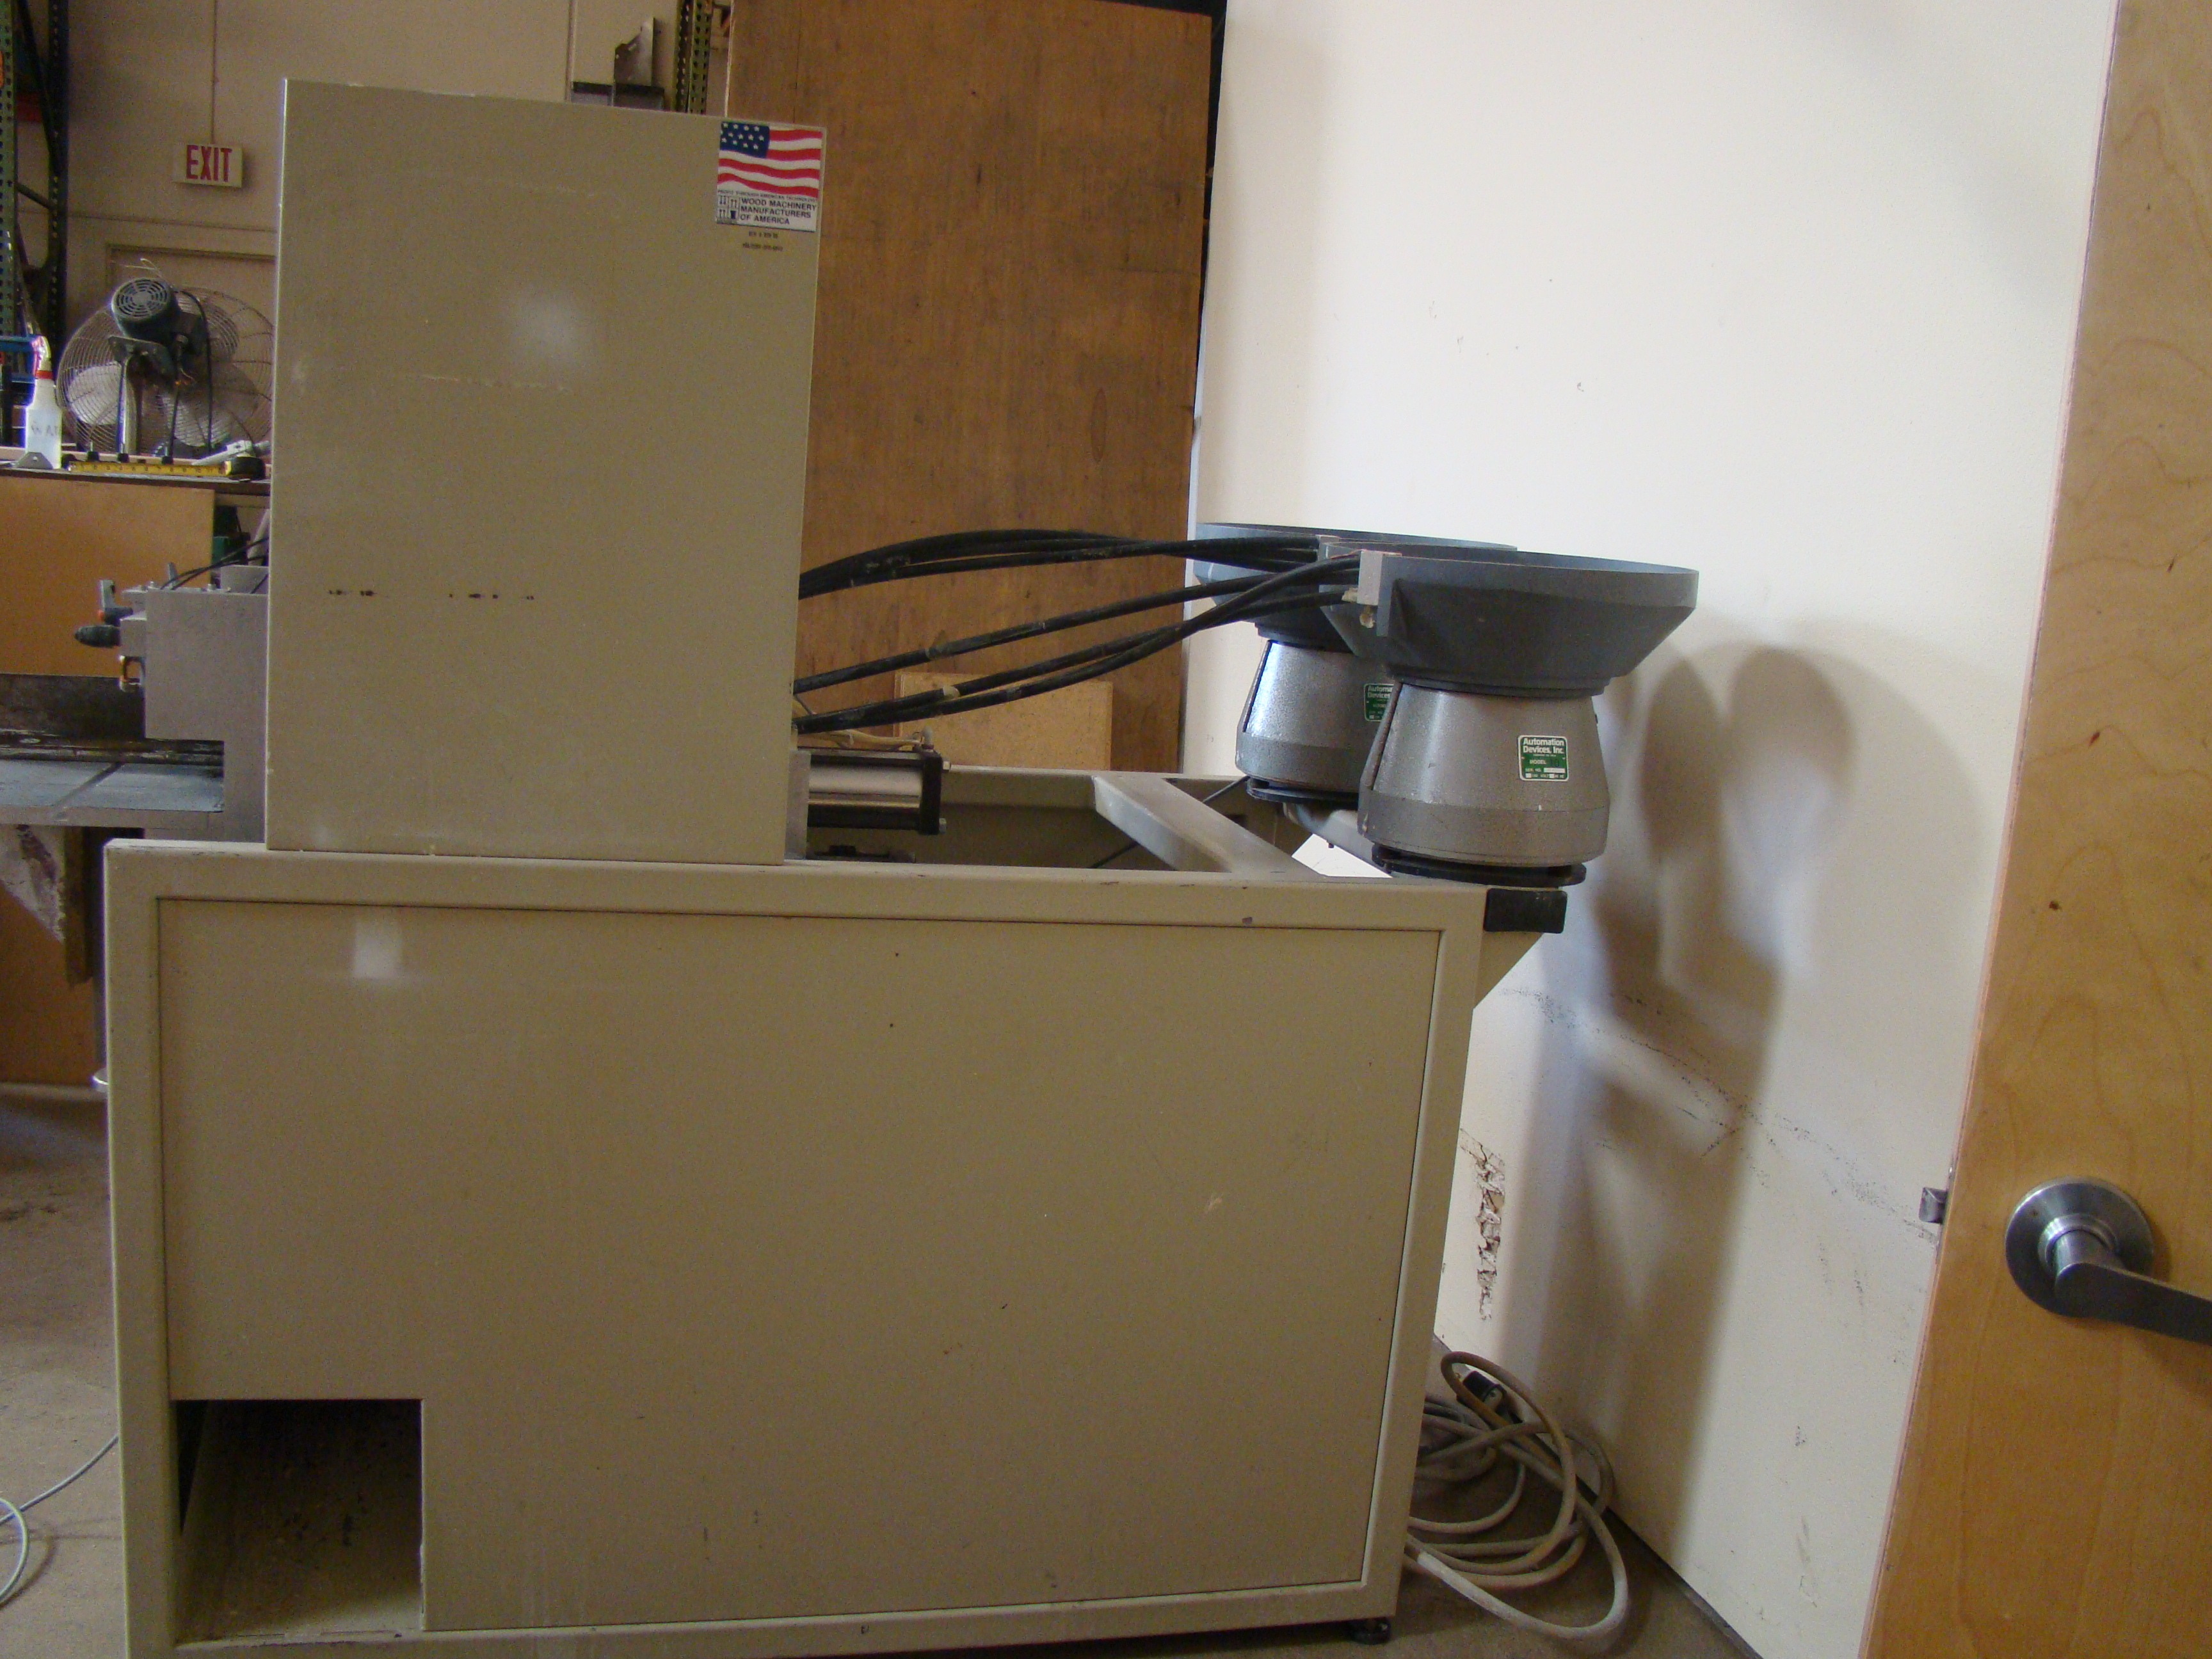 ACCU-Systems 366 Dowel Insertion Machine with Foot Pedal, Vibratory Bowl Feeders, Glue Pot 220 - Image 2 of 8